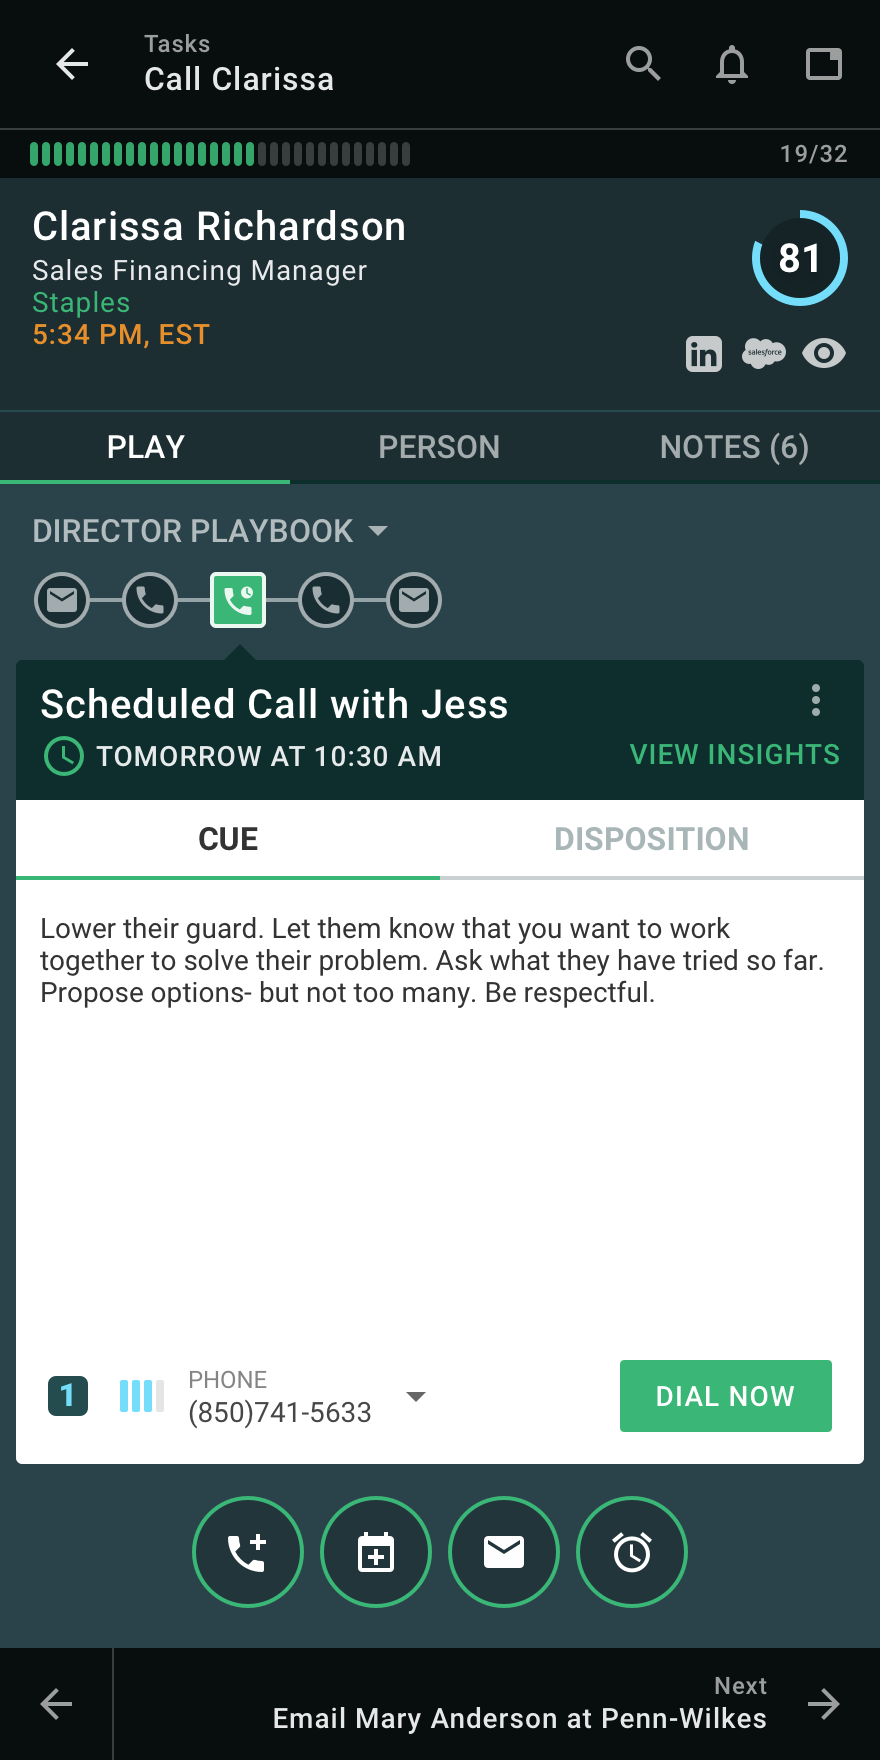 Scheduling a call within Playbooks